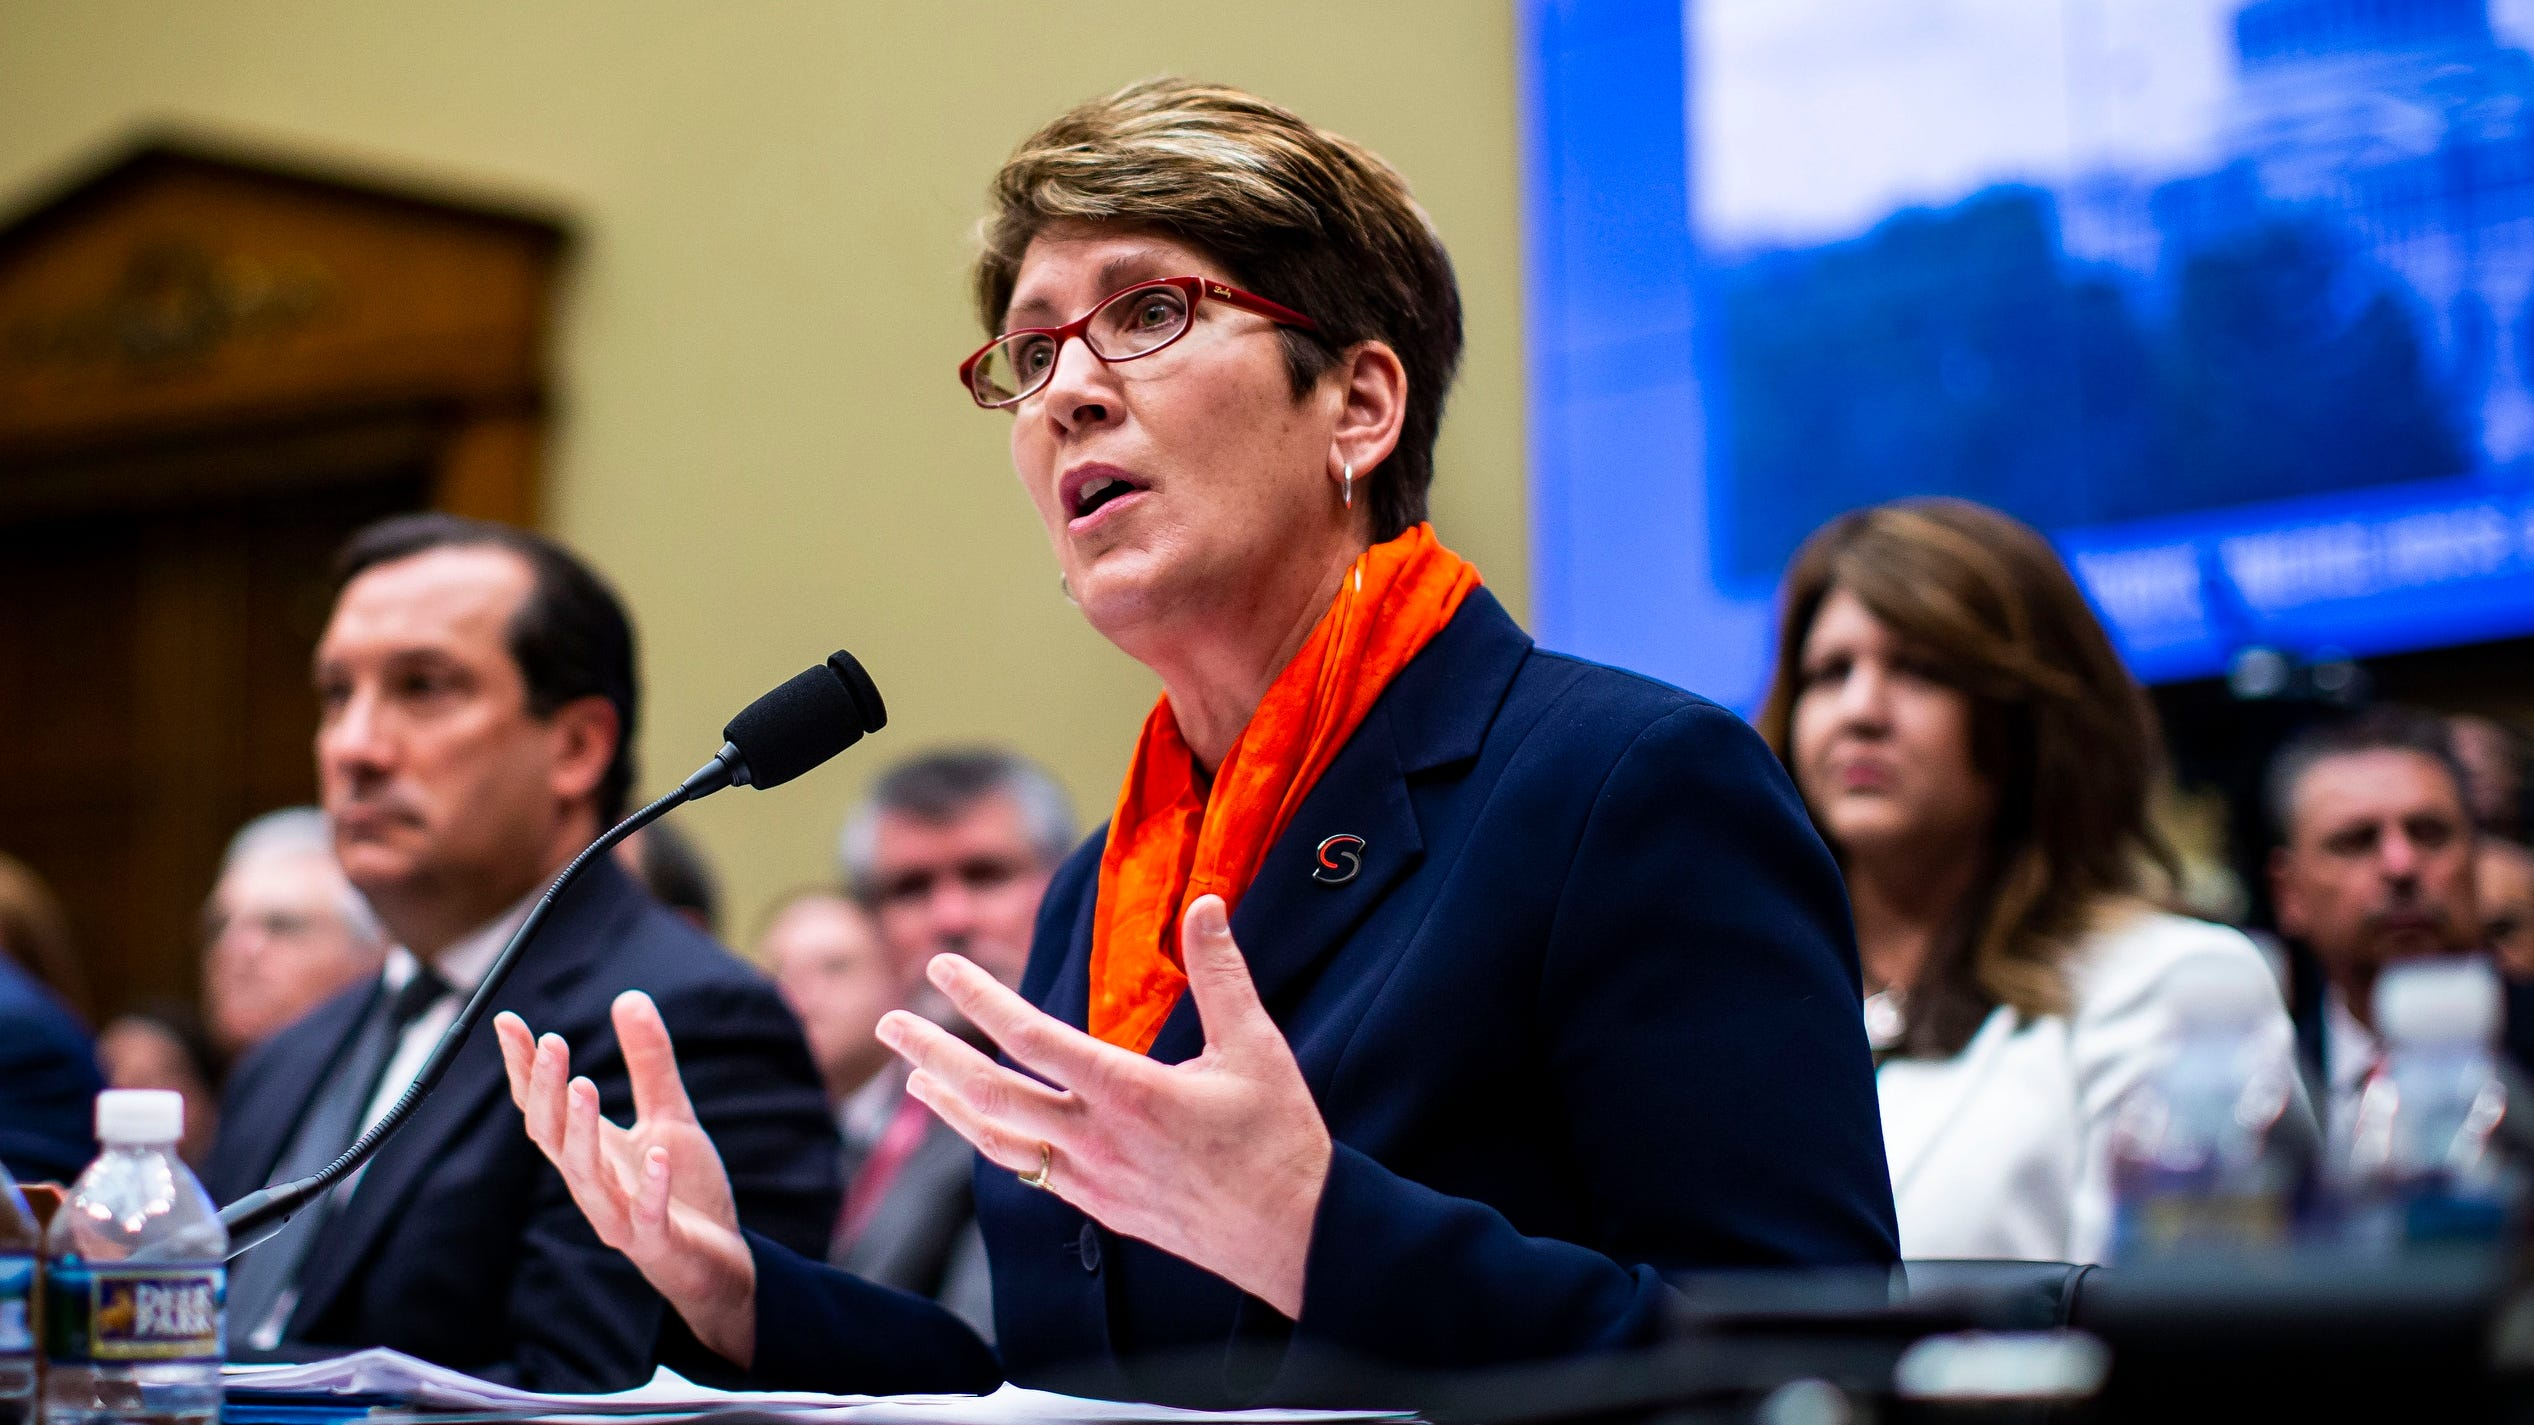 Shellie Pfohl, president and CEO of the U.S. Center for SafeSport, before Congress in May 2018.